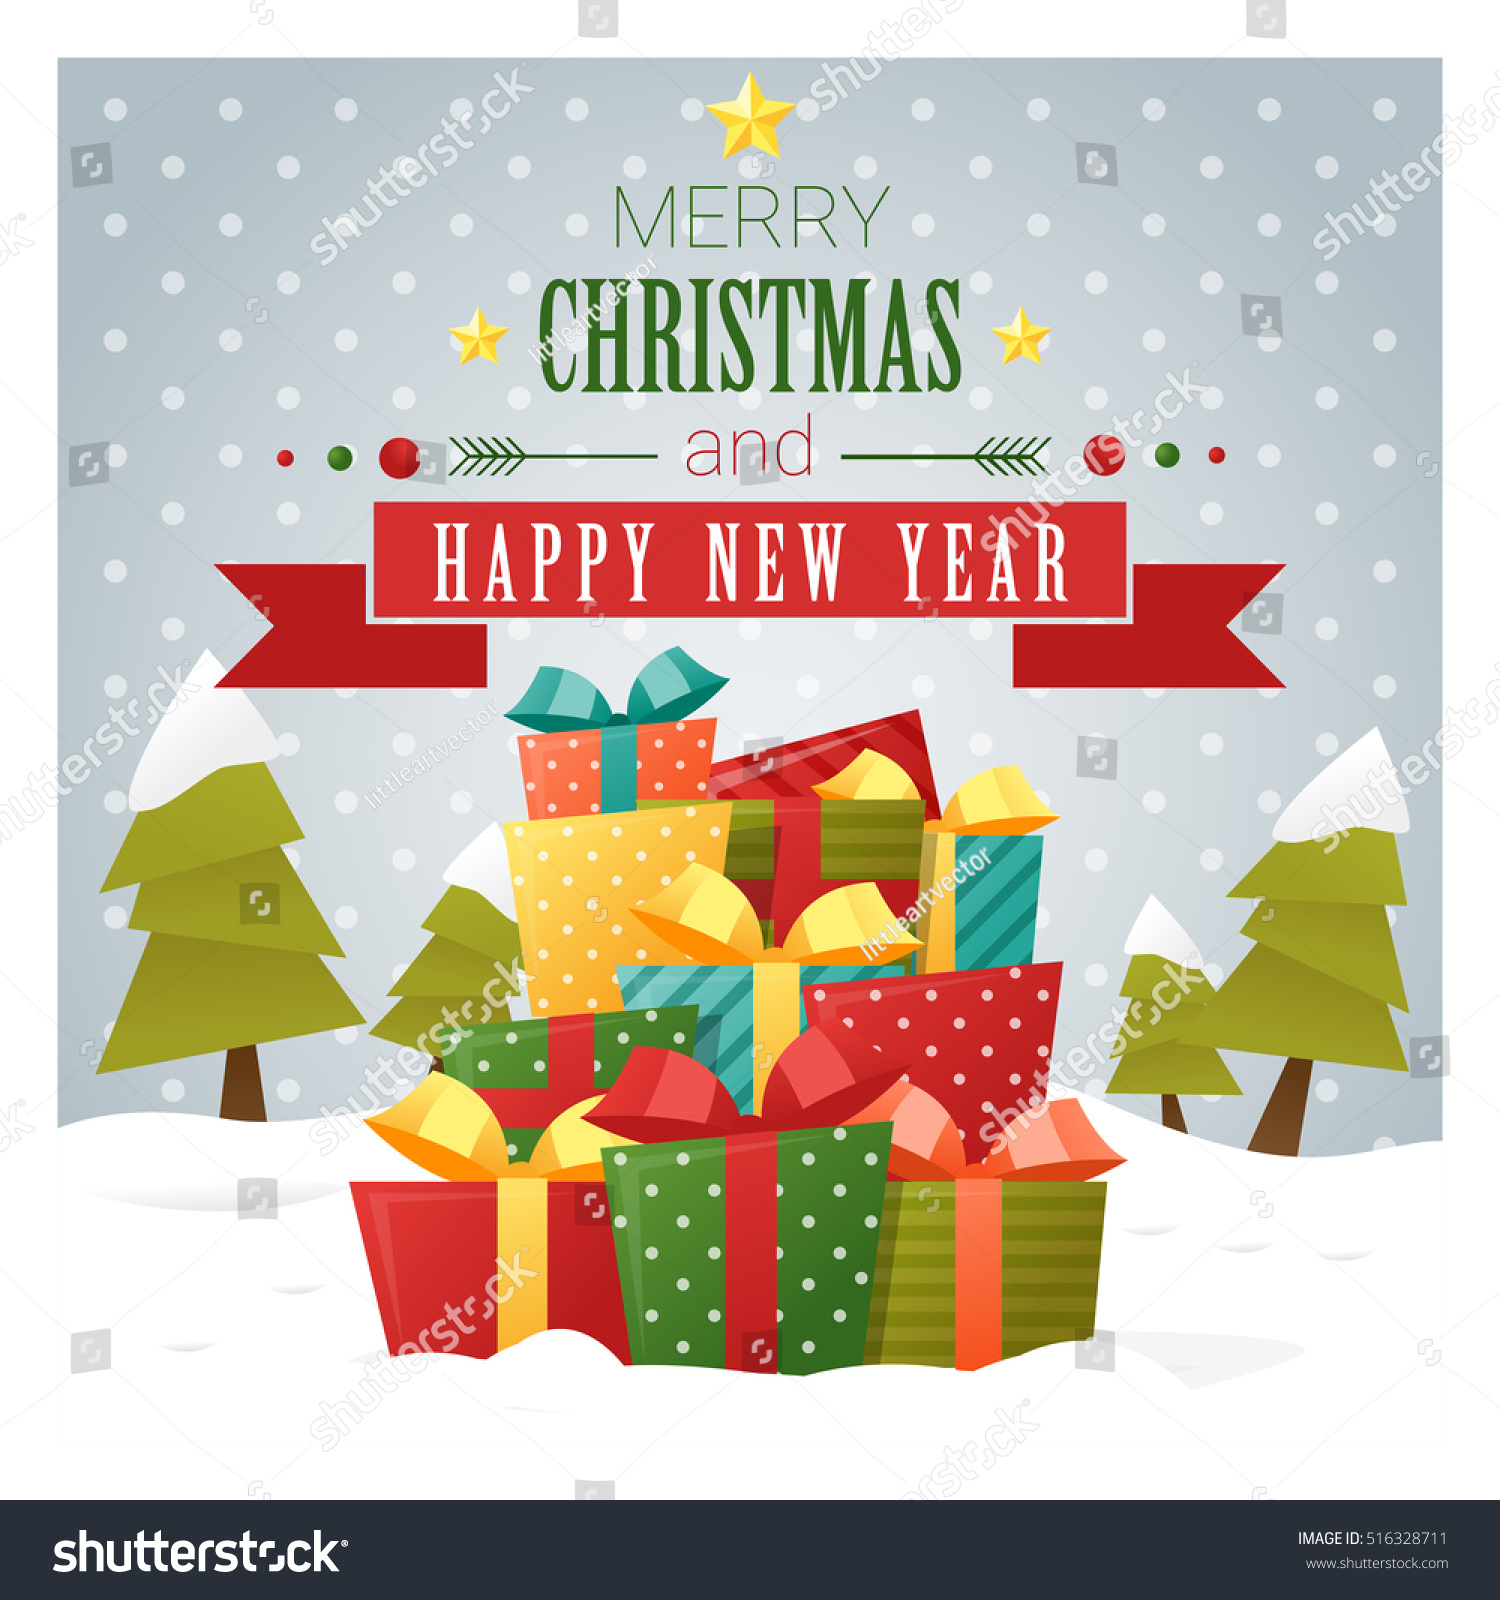 Merry Christmas Happy New Year Greeting Stock Vector 516328711